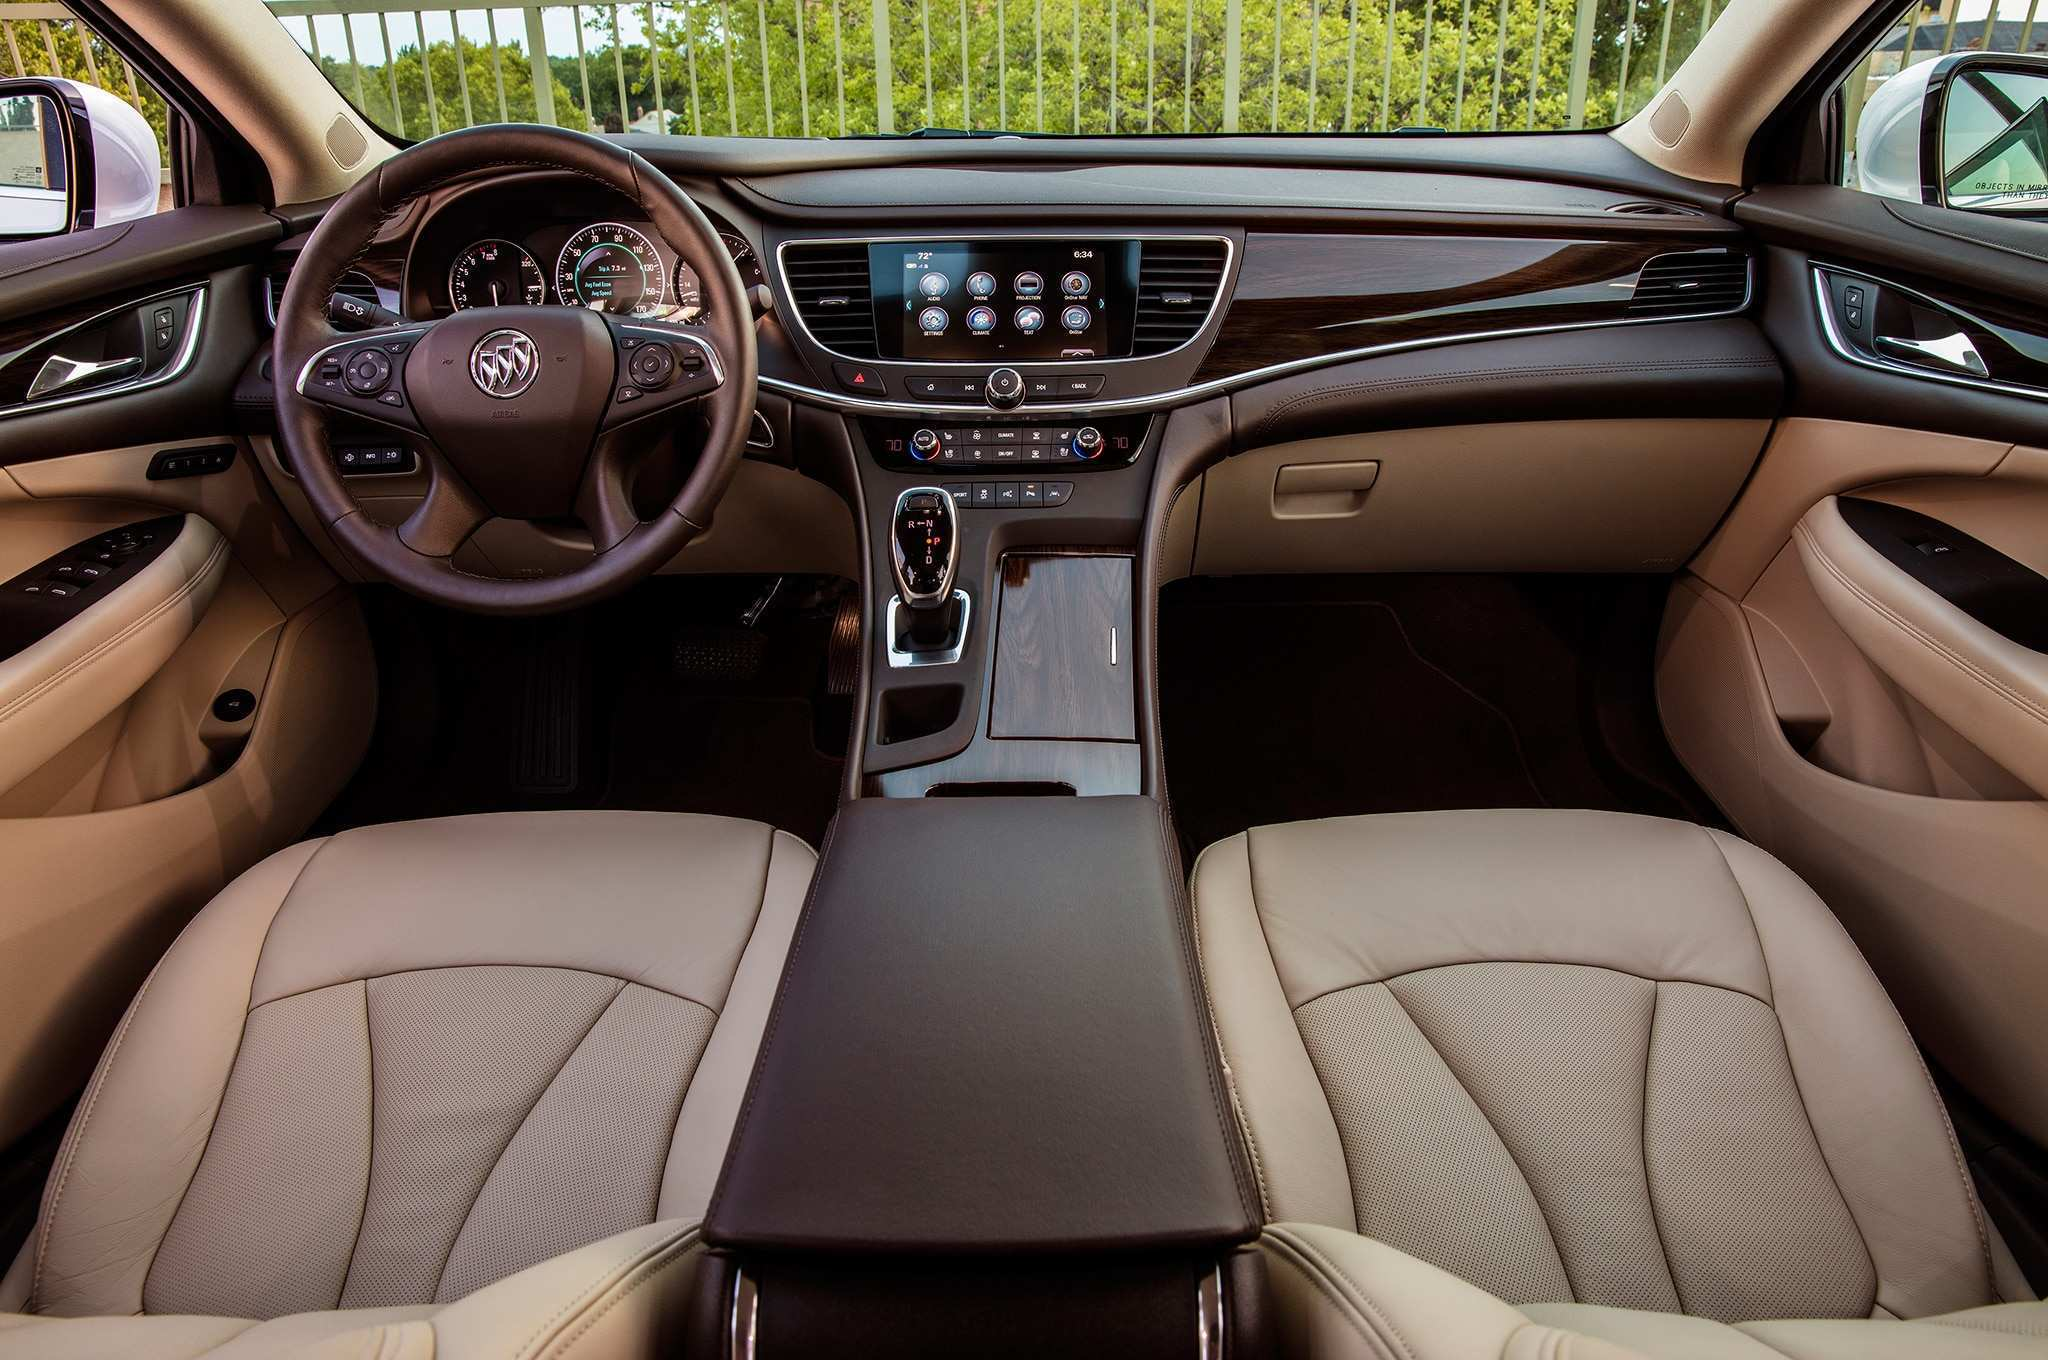 83 New The New Buick Cars 2019 New Interior Engine by The New Buick Cars 2019 New Interior